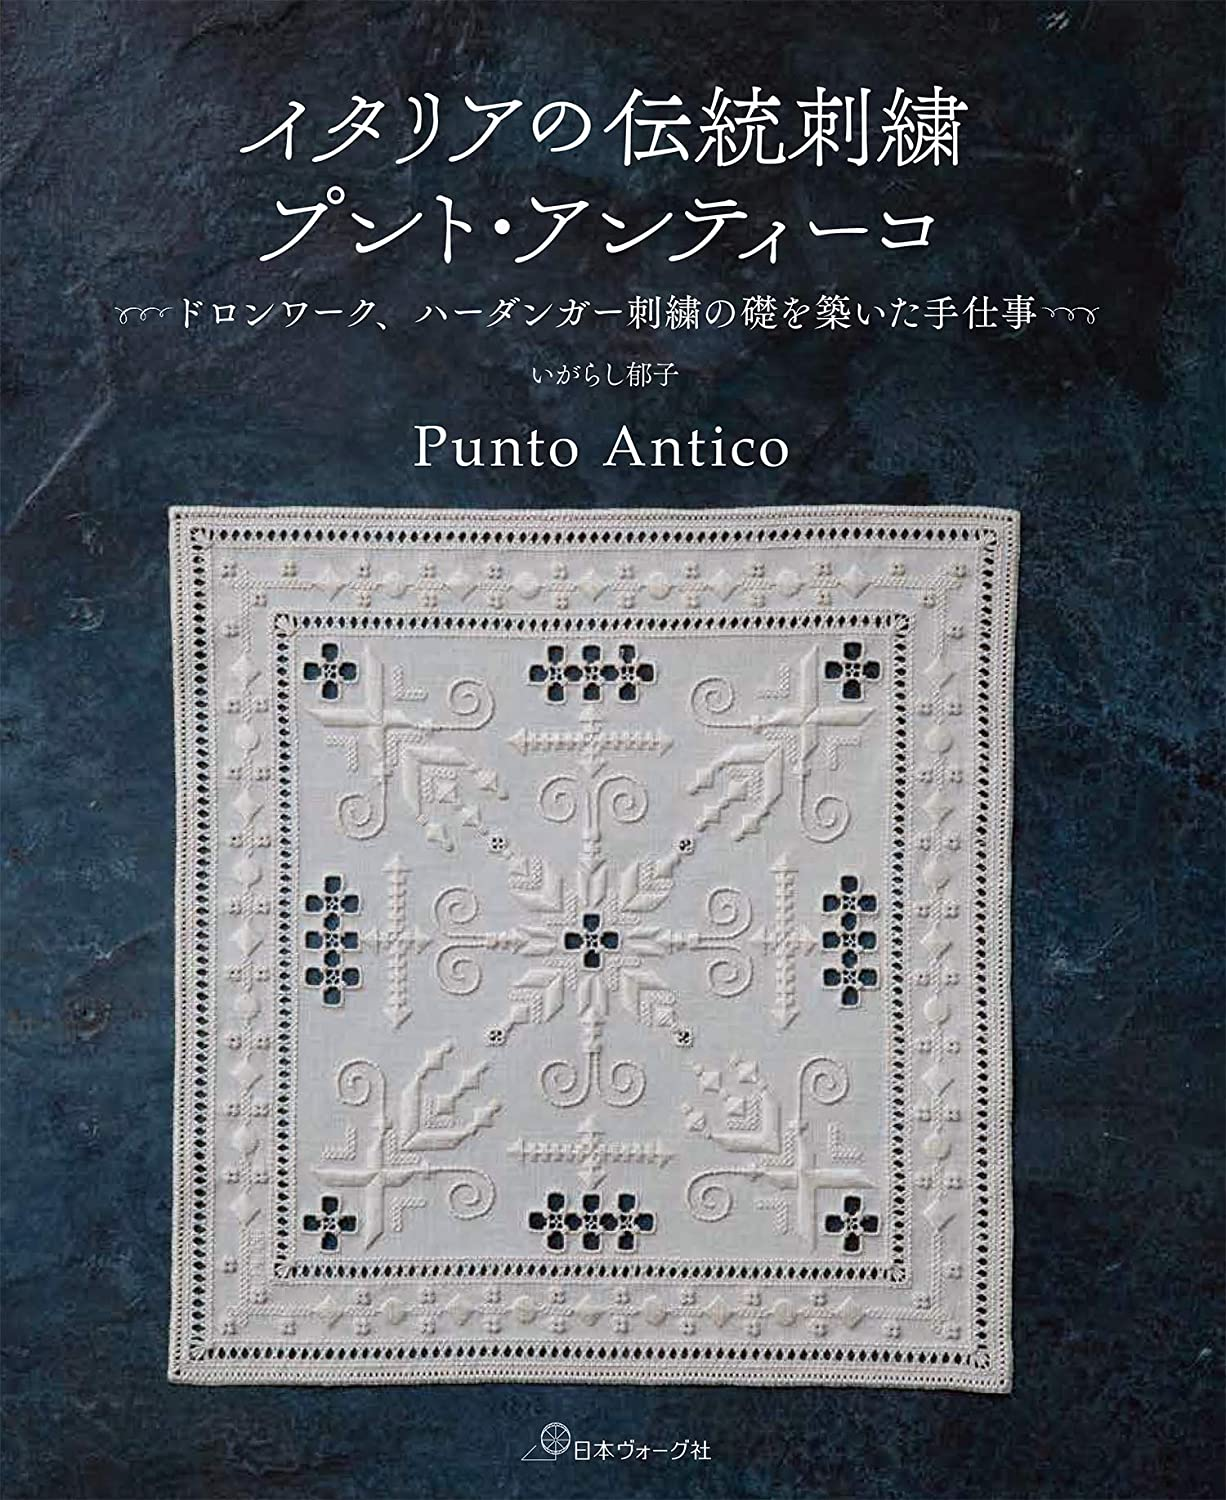 Italian traditional embroidery Punt Antico